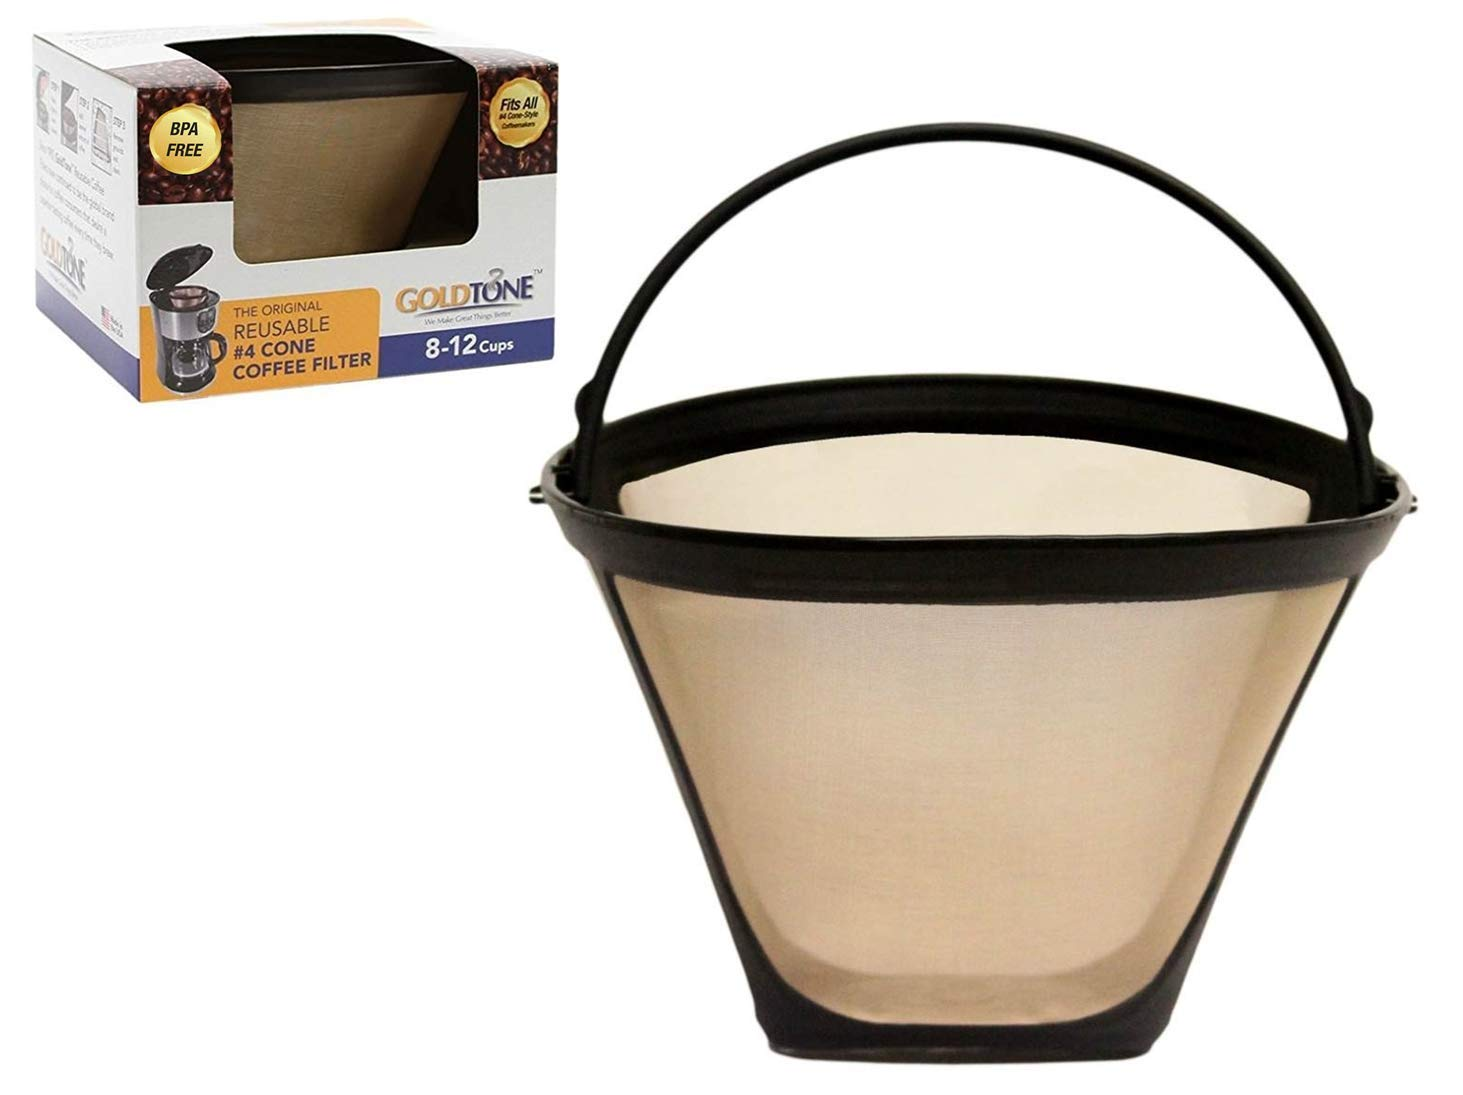 GoldTone Brand Reusable No.4 Cone Filter replaces Black+Decker No.4 Cone Coffee Filter and Permanent Black & Decker Coffee Filter for Black and Decker Machines and Brewers